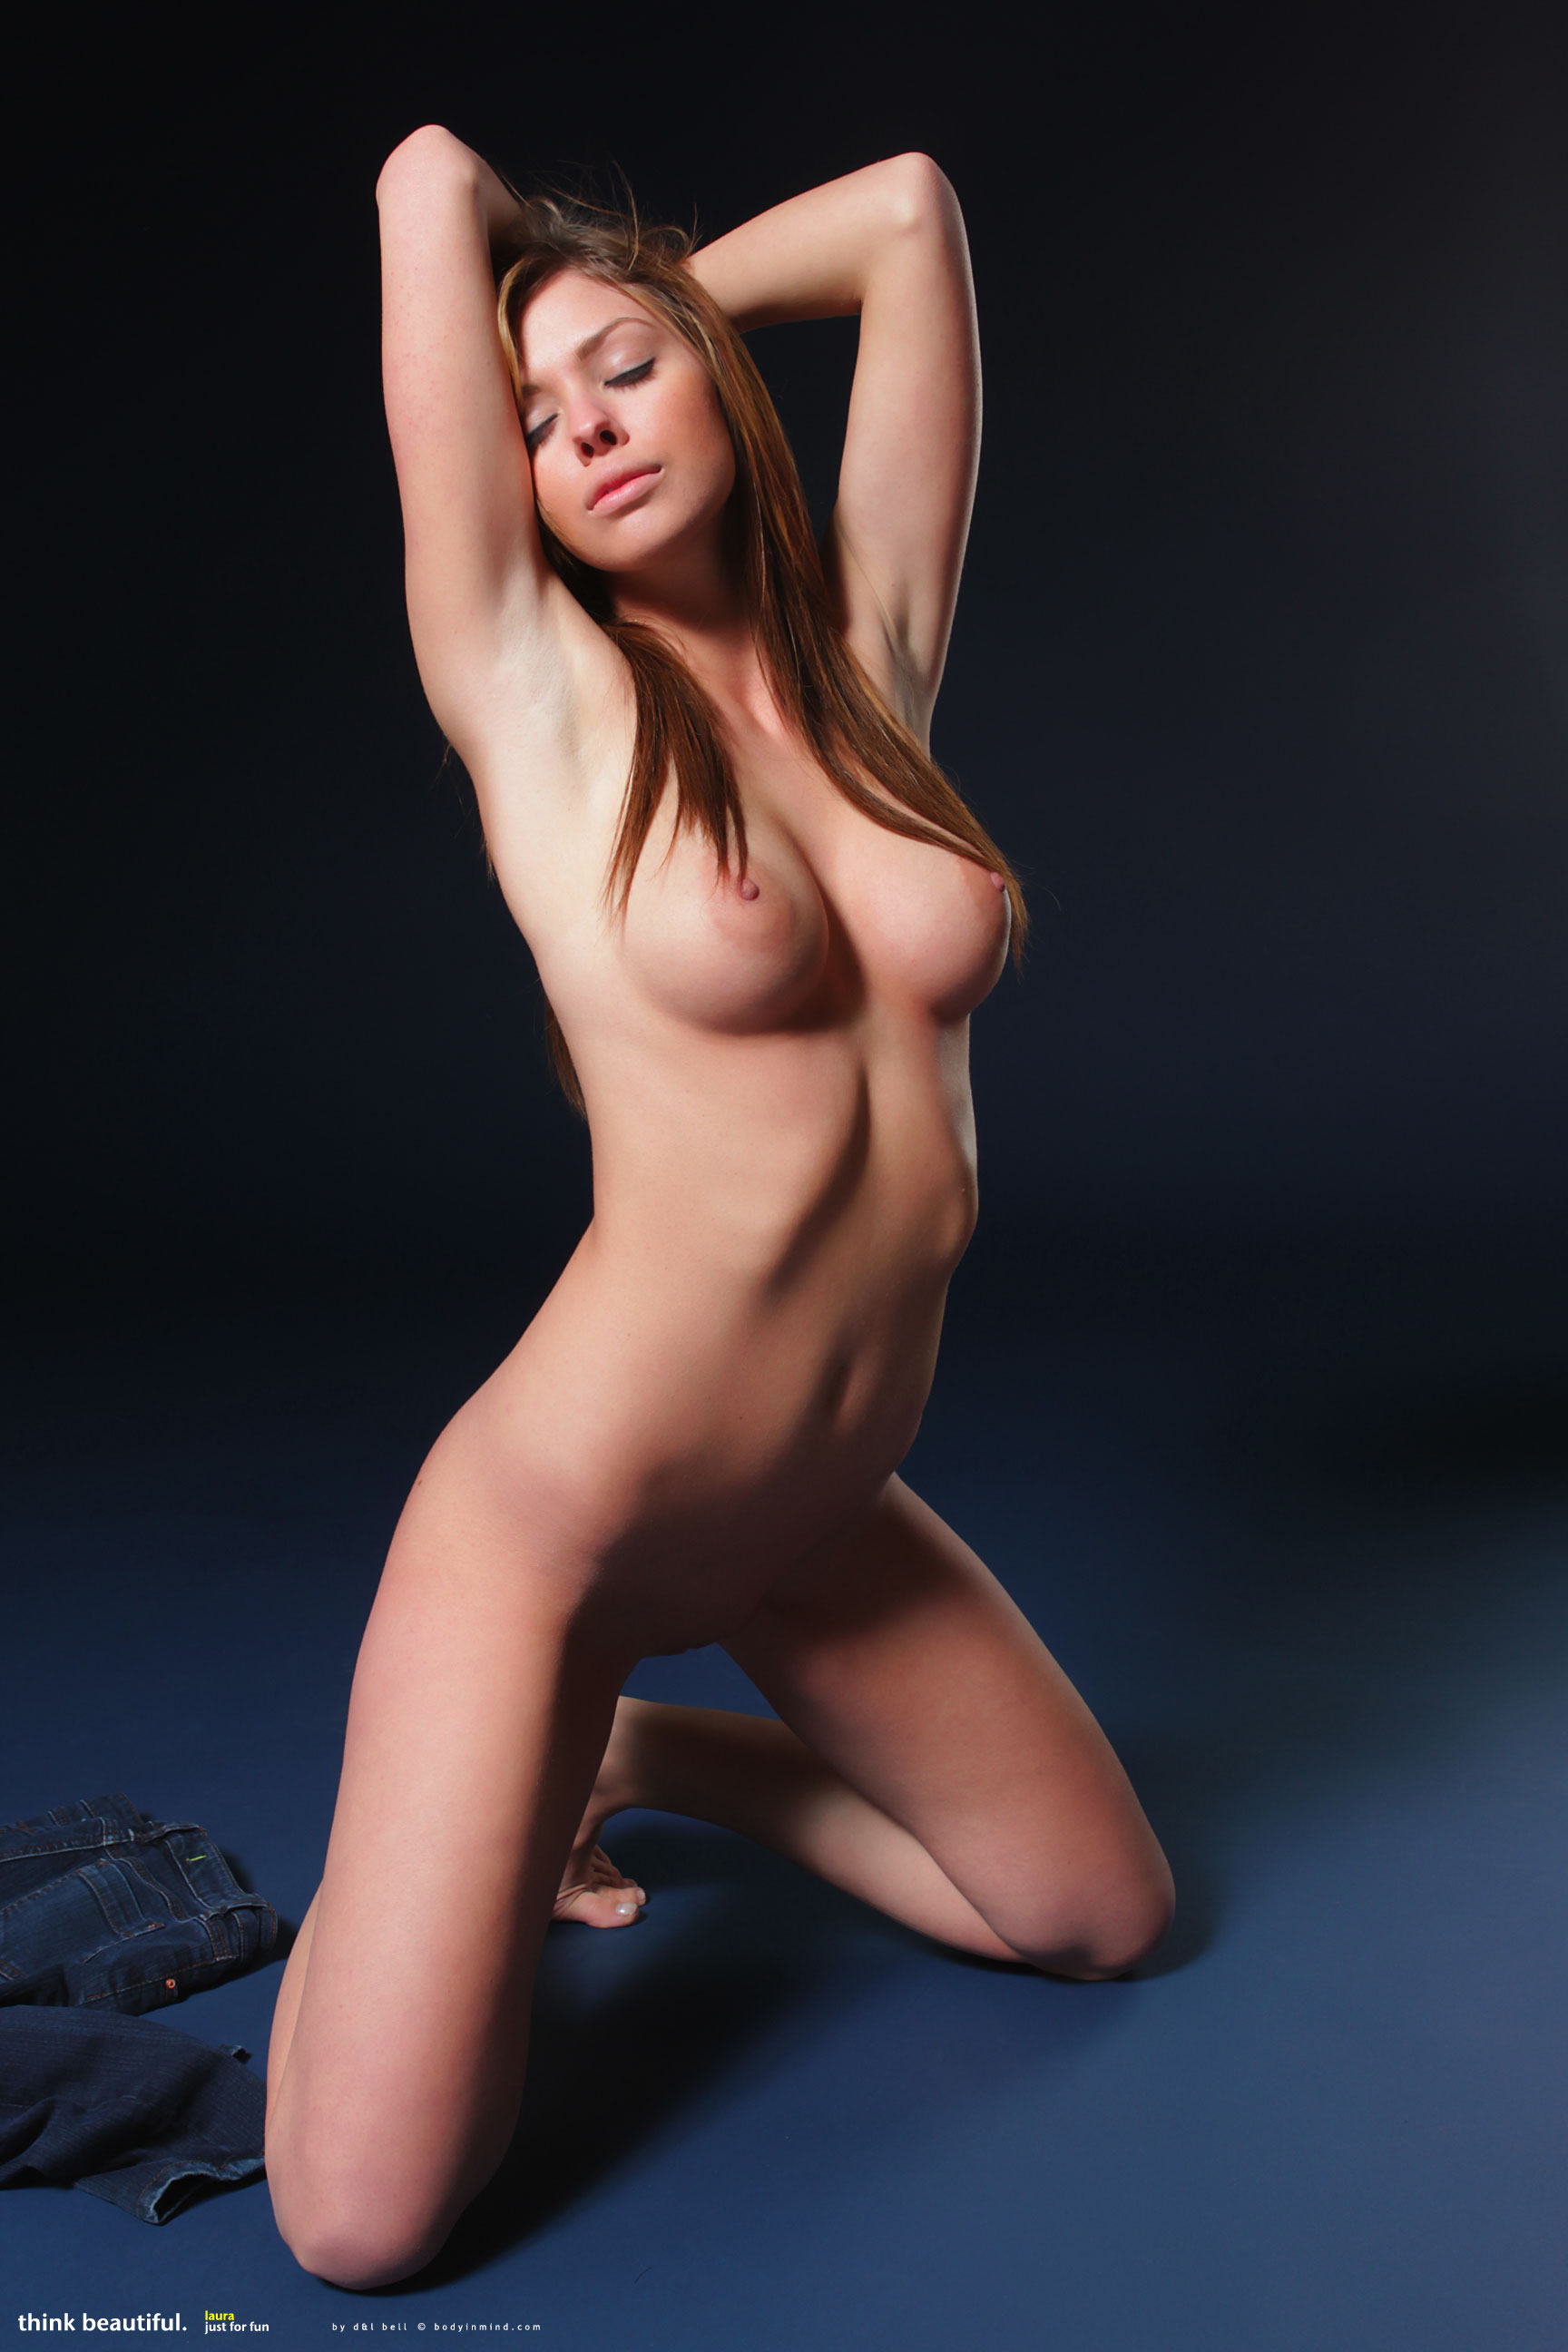 perfect body girl nude